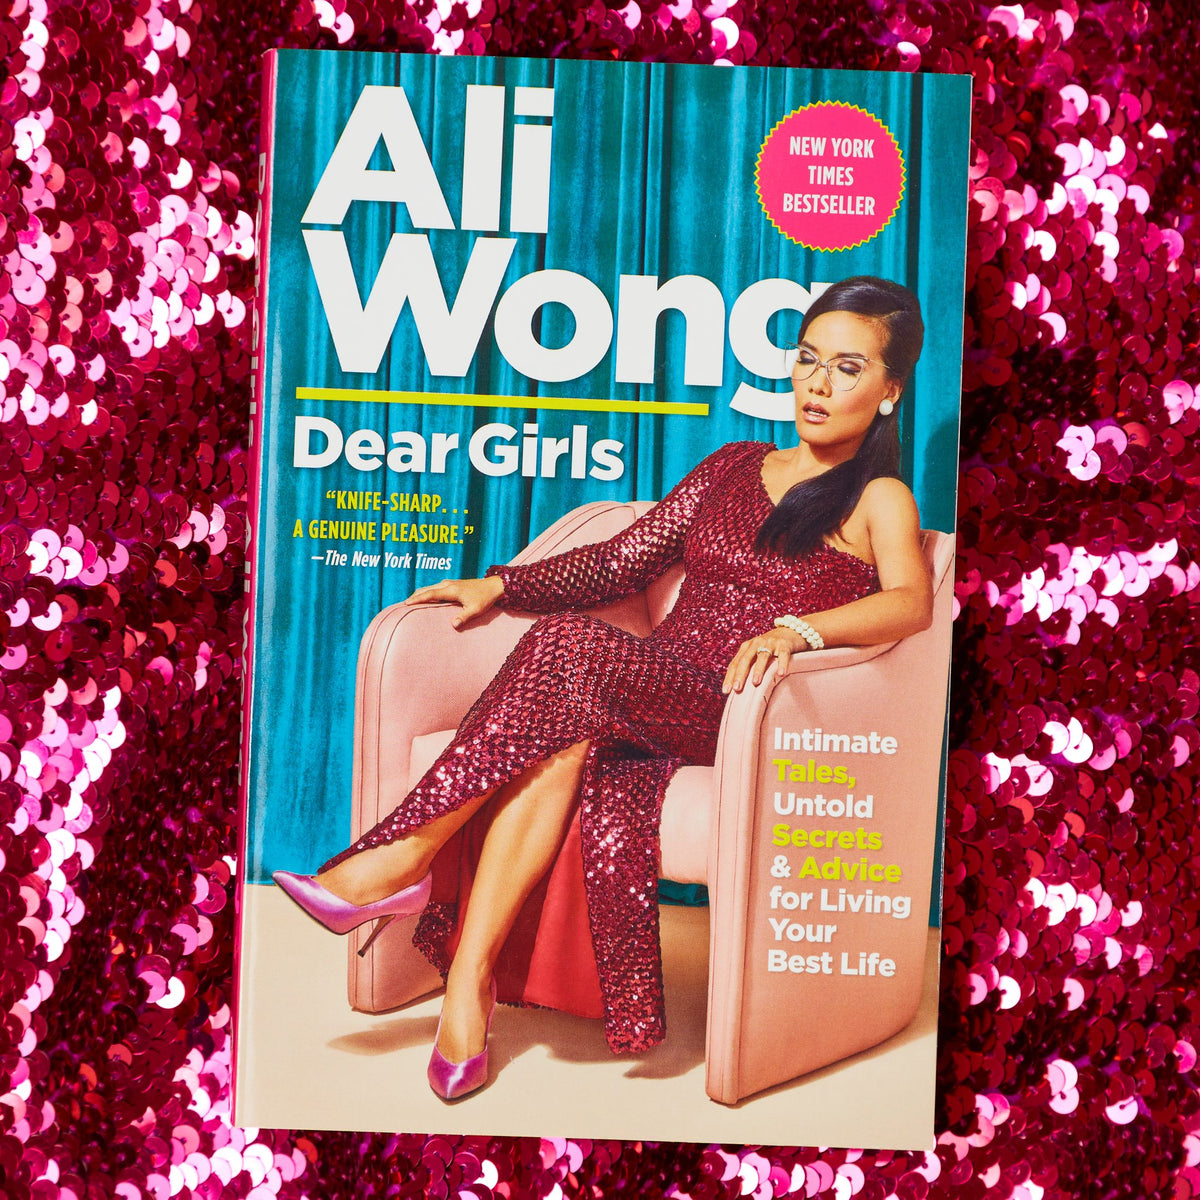 Dear Girls Book - Intimate Tales, Untold Secrets & Advice for Living Your Best Life